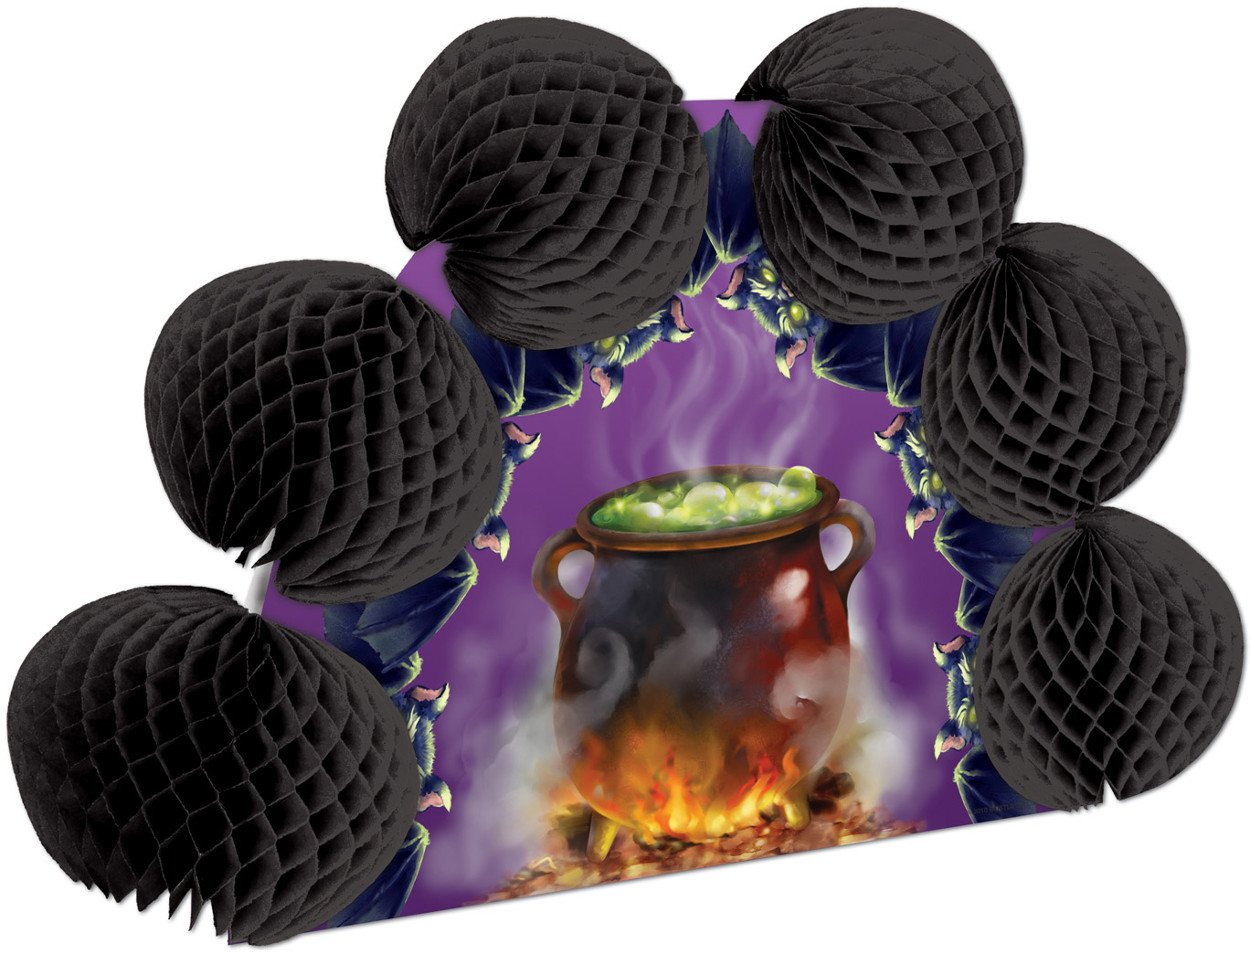 Cauldron & Bats Pop-Over Centerpiece Party Accessory (1 count) (1/Pkg)